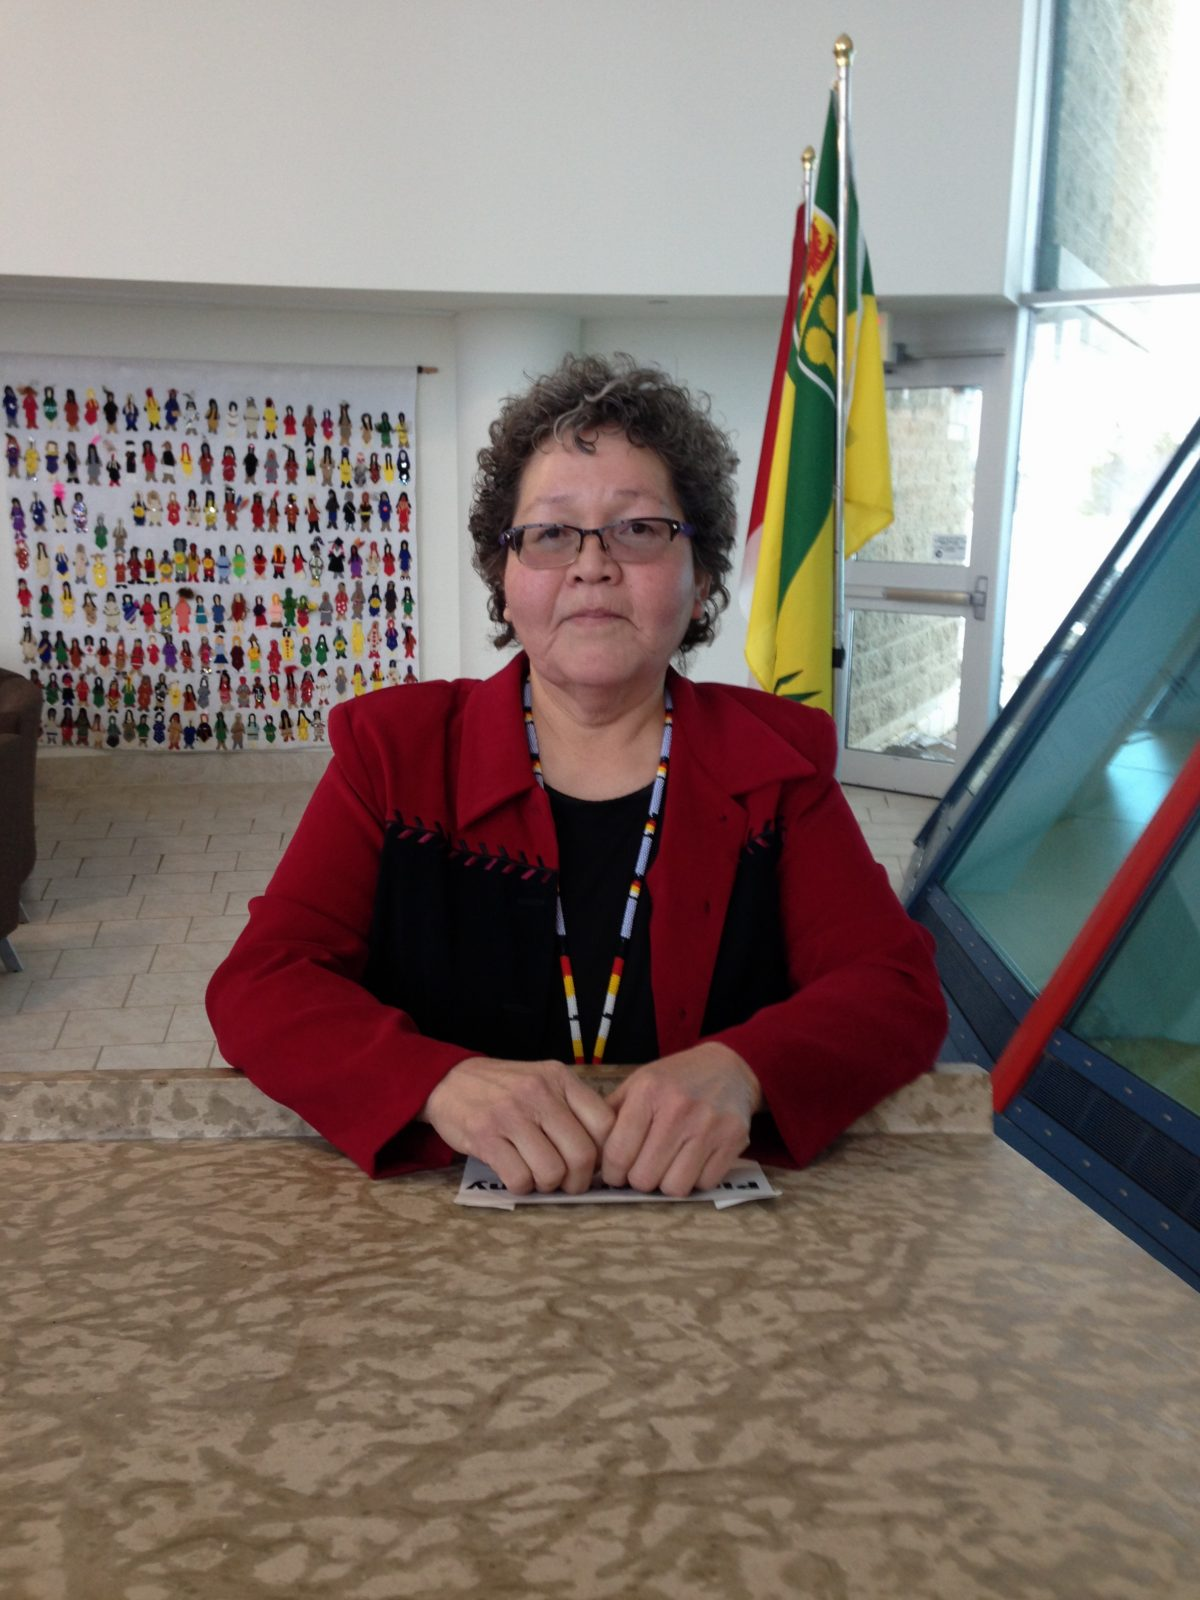 Elders Play a Vital Role at FNUniv and across Saskatchewan